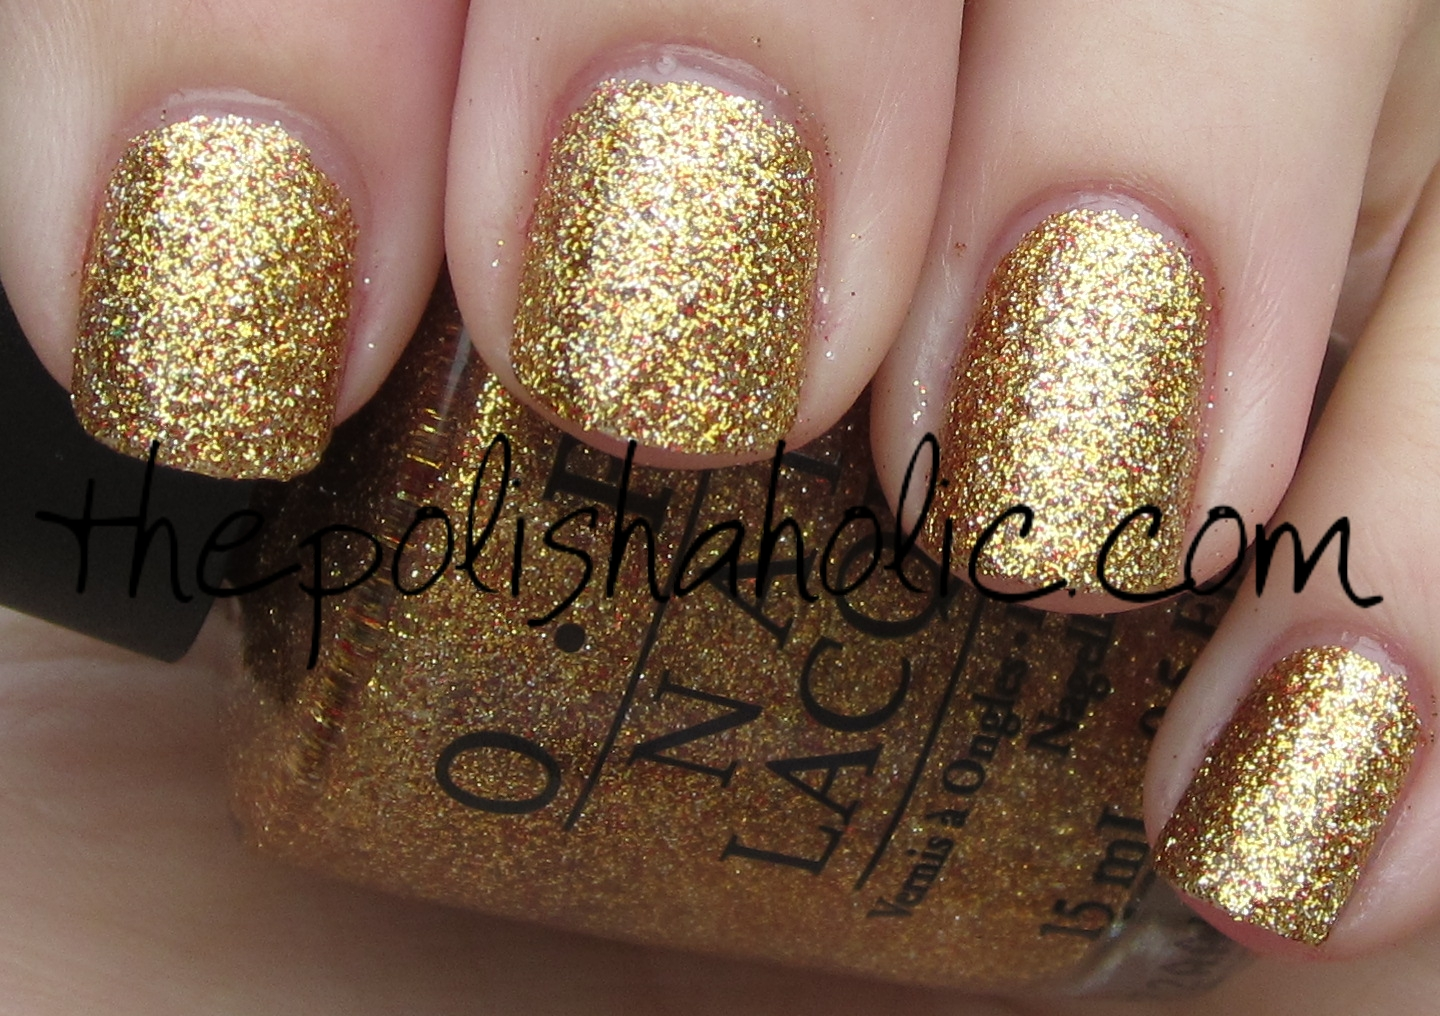 The PolishAholic: OPI- Gift of Gold (Ulta Holiday Exclusive)